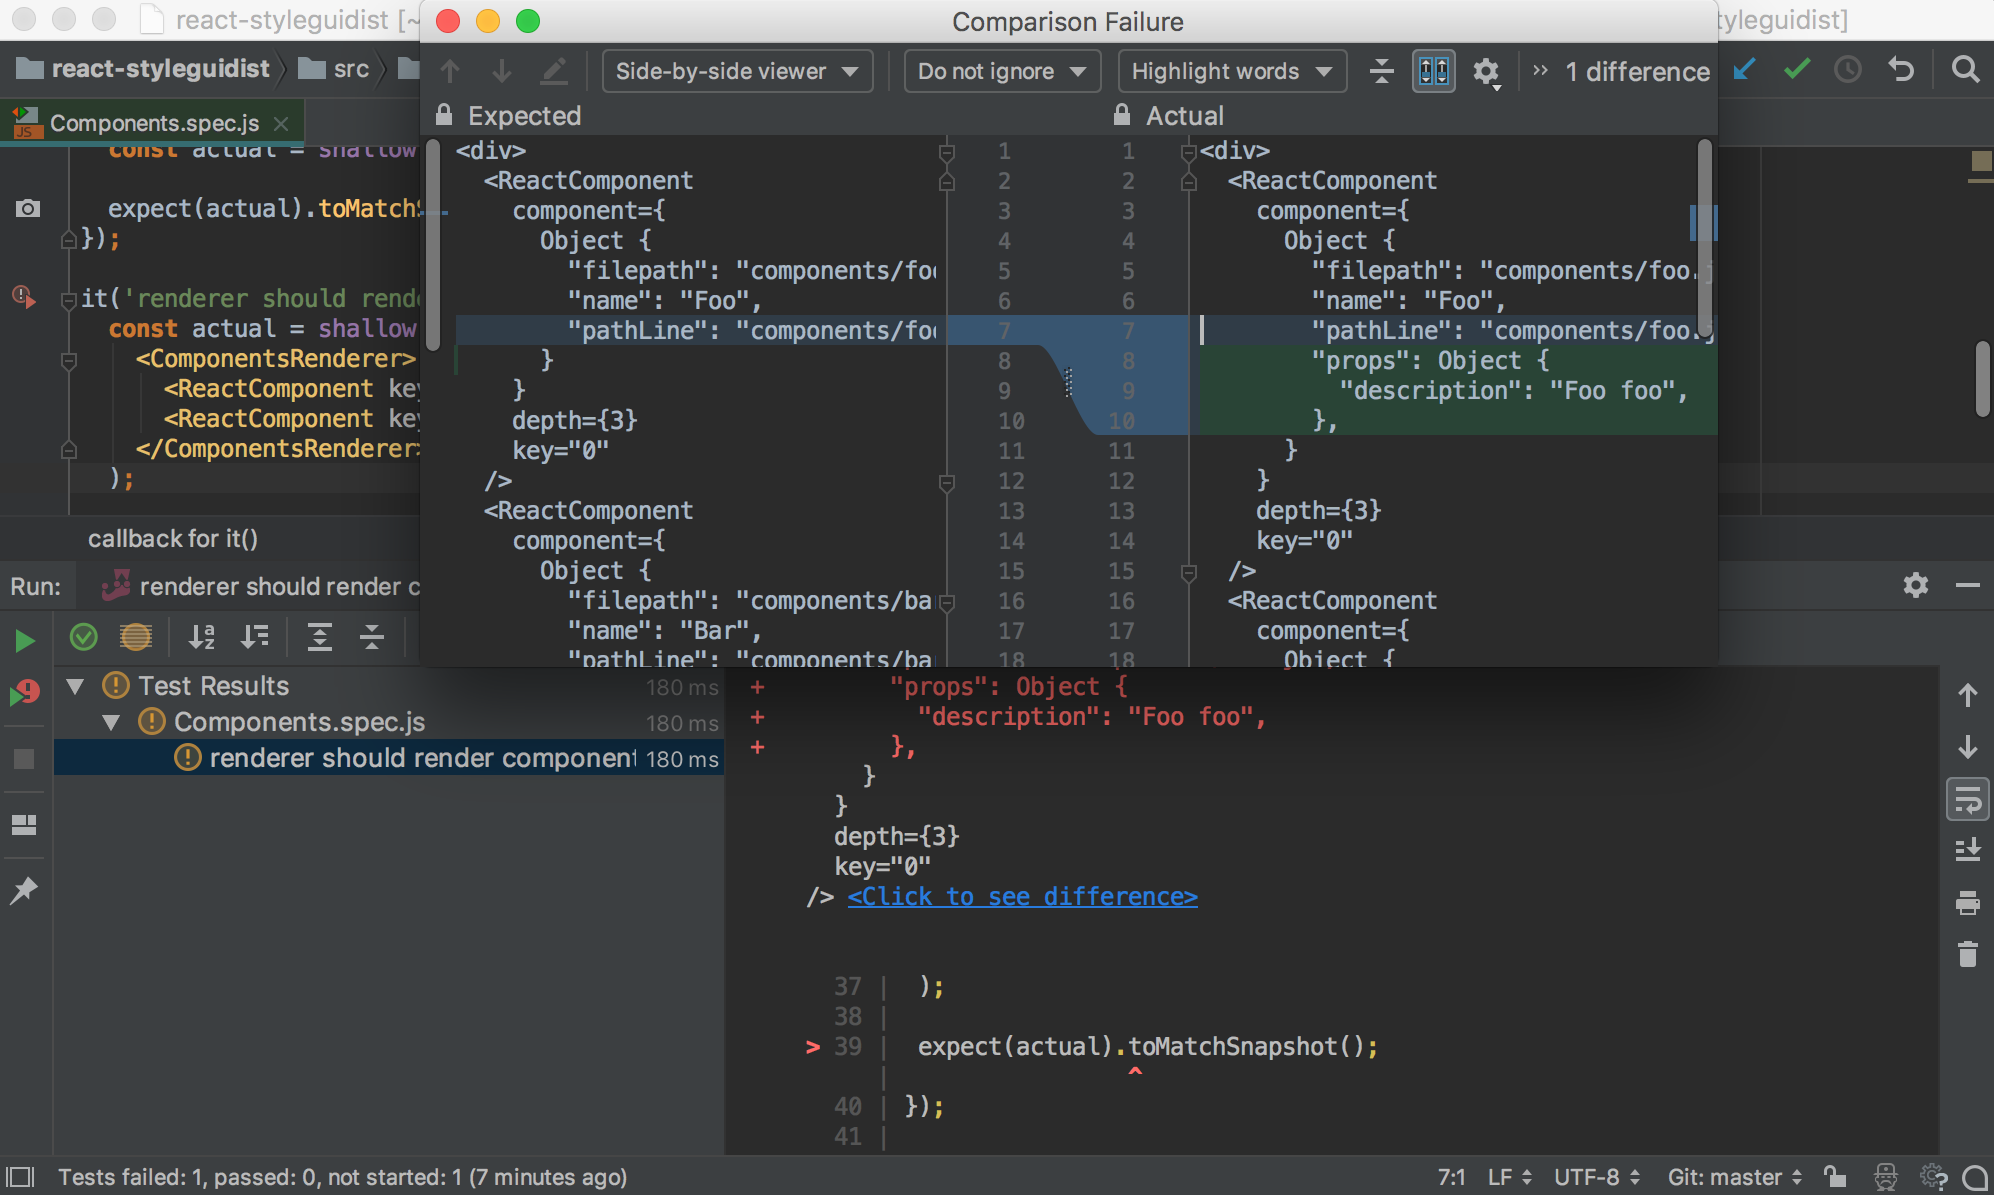 Jest snapshots: compare the expected and actual snapshots in the PyCharm Difference Viewer